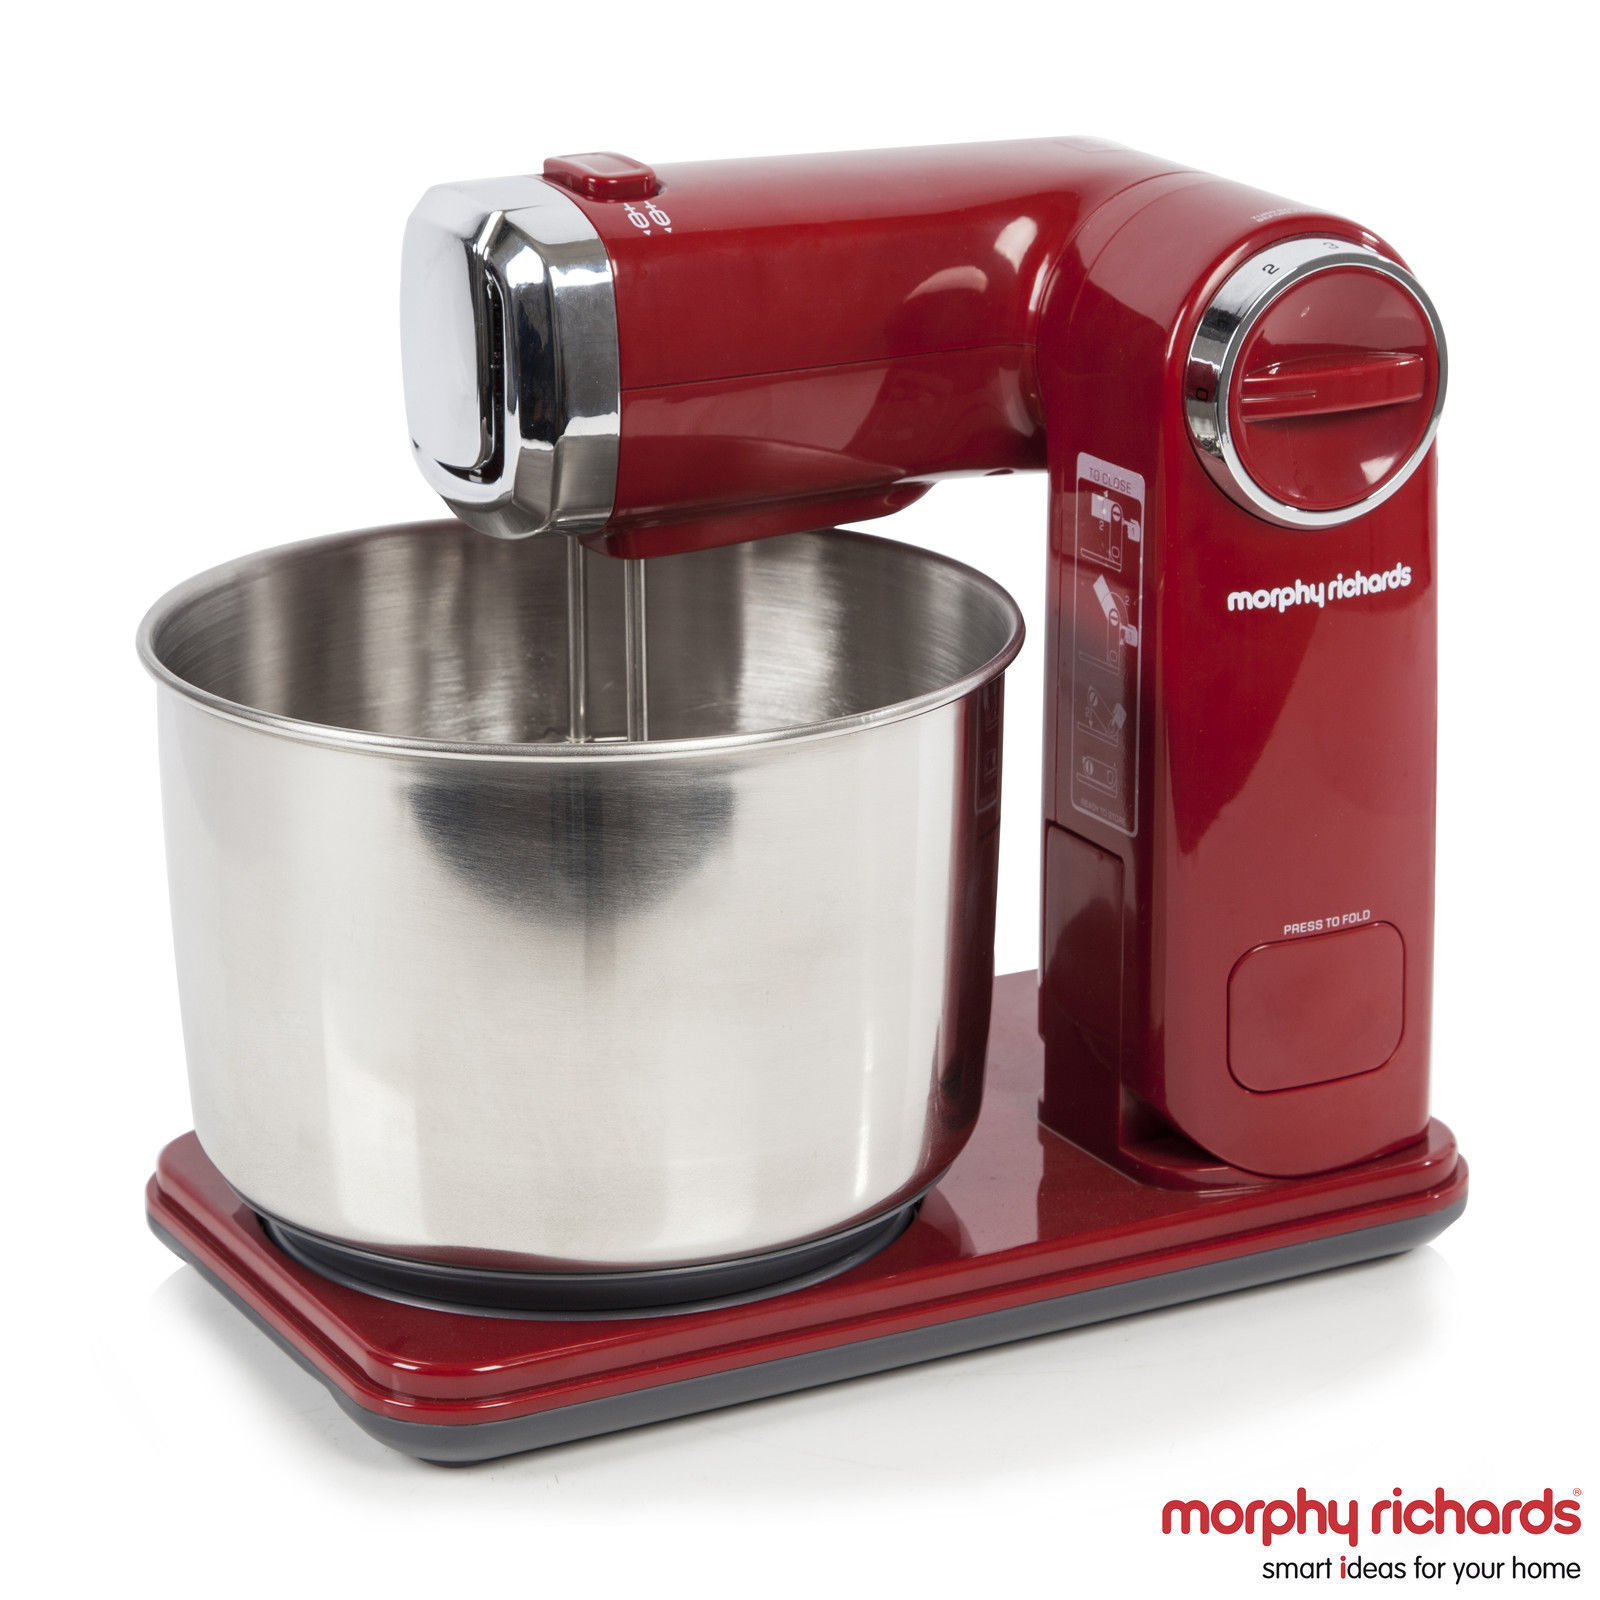 Morphy Richards 400404 Accents Folding Stand Mixer, 300 Watt – Purple – Model NEW